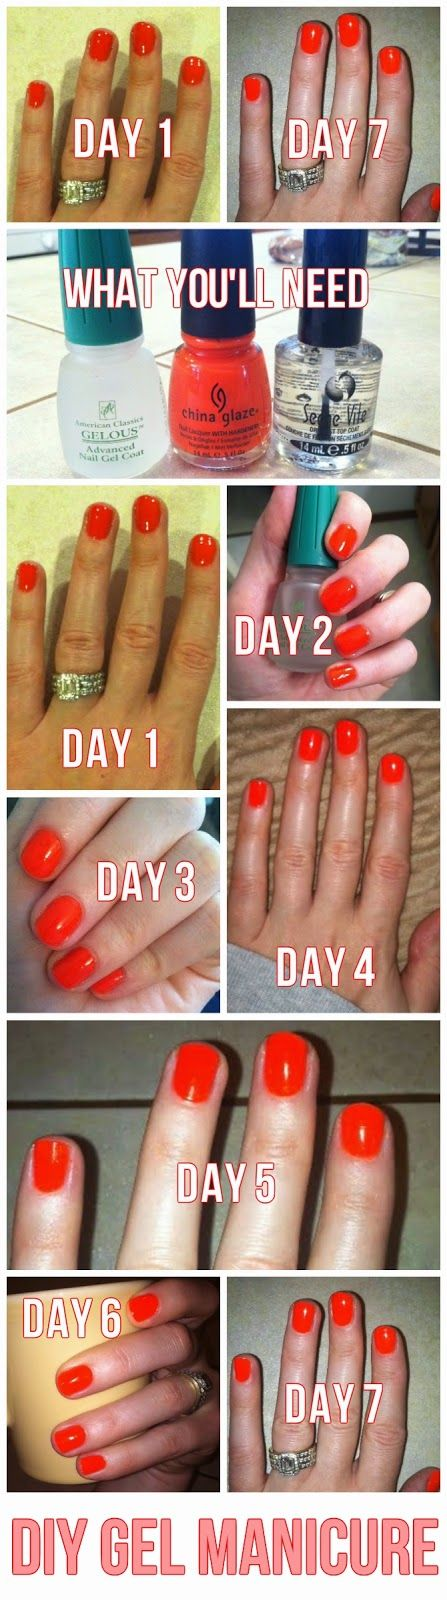 Best 25 diy gel nails ideas on pinterest gel nail tips gel diy gel manicure with no lamp lets talk about lipstick update solutioingenieria Images